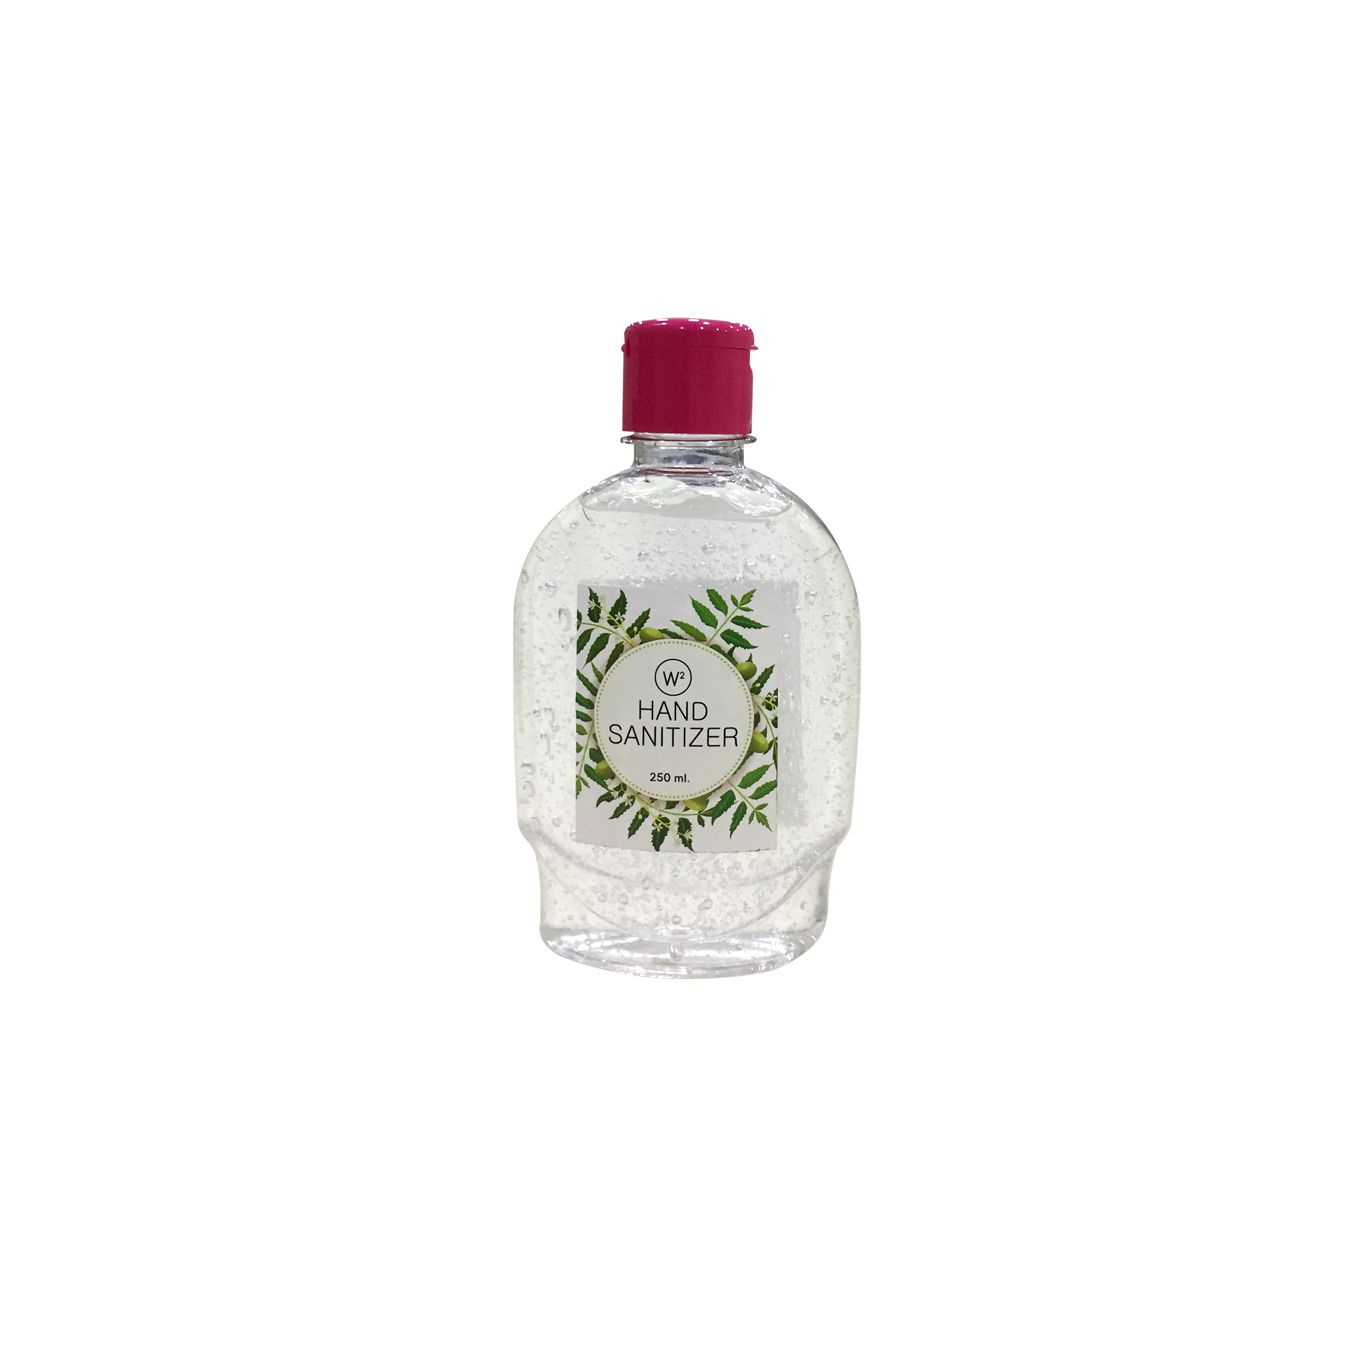 W2 Sanitizer 250 ml (Pack of 8)